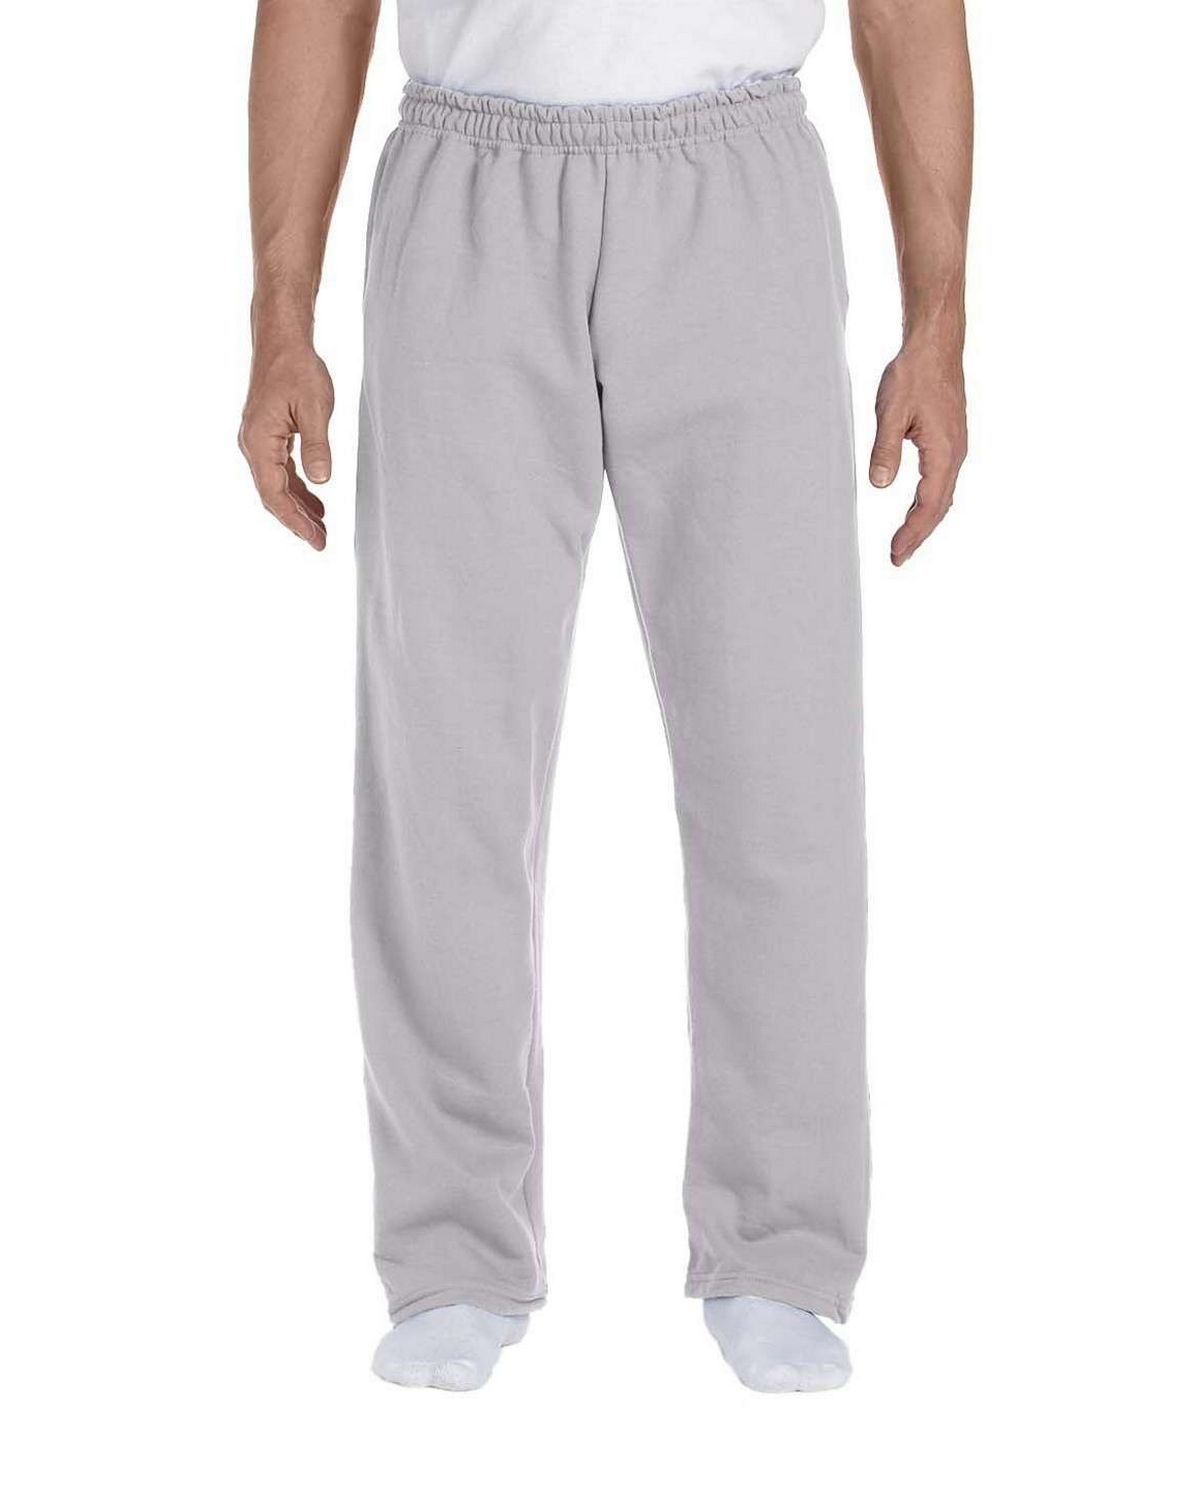 Gildan 12300 Open Bottom Sweatpants - Sport Grey - L 12300